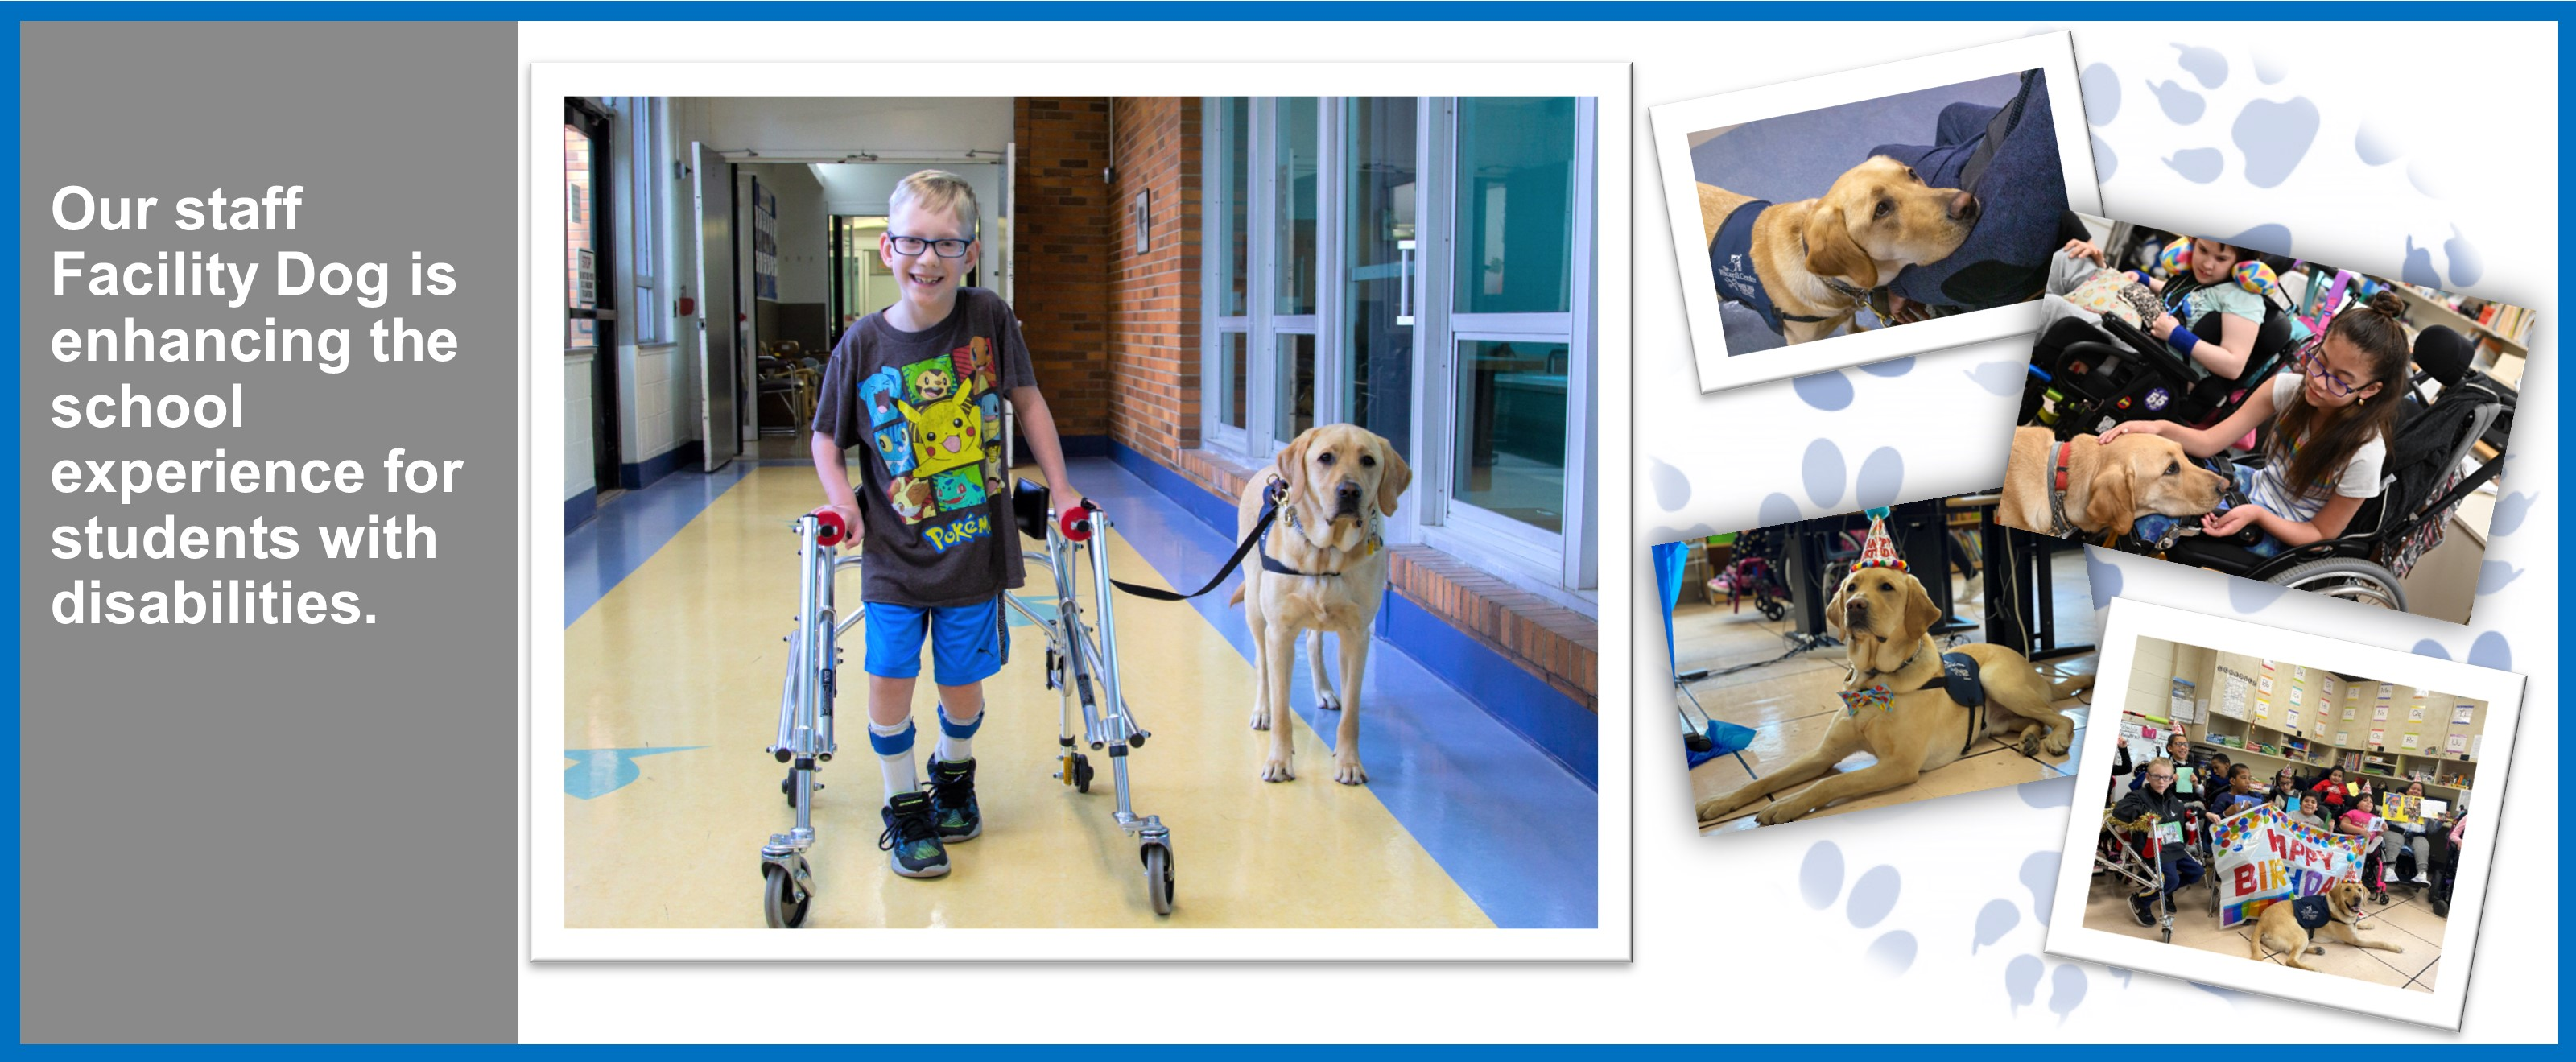 Our staff Facility Dog is enhancing the school experience for students with disabilities.